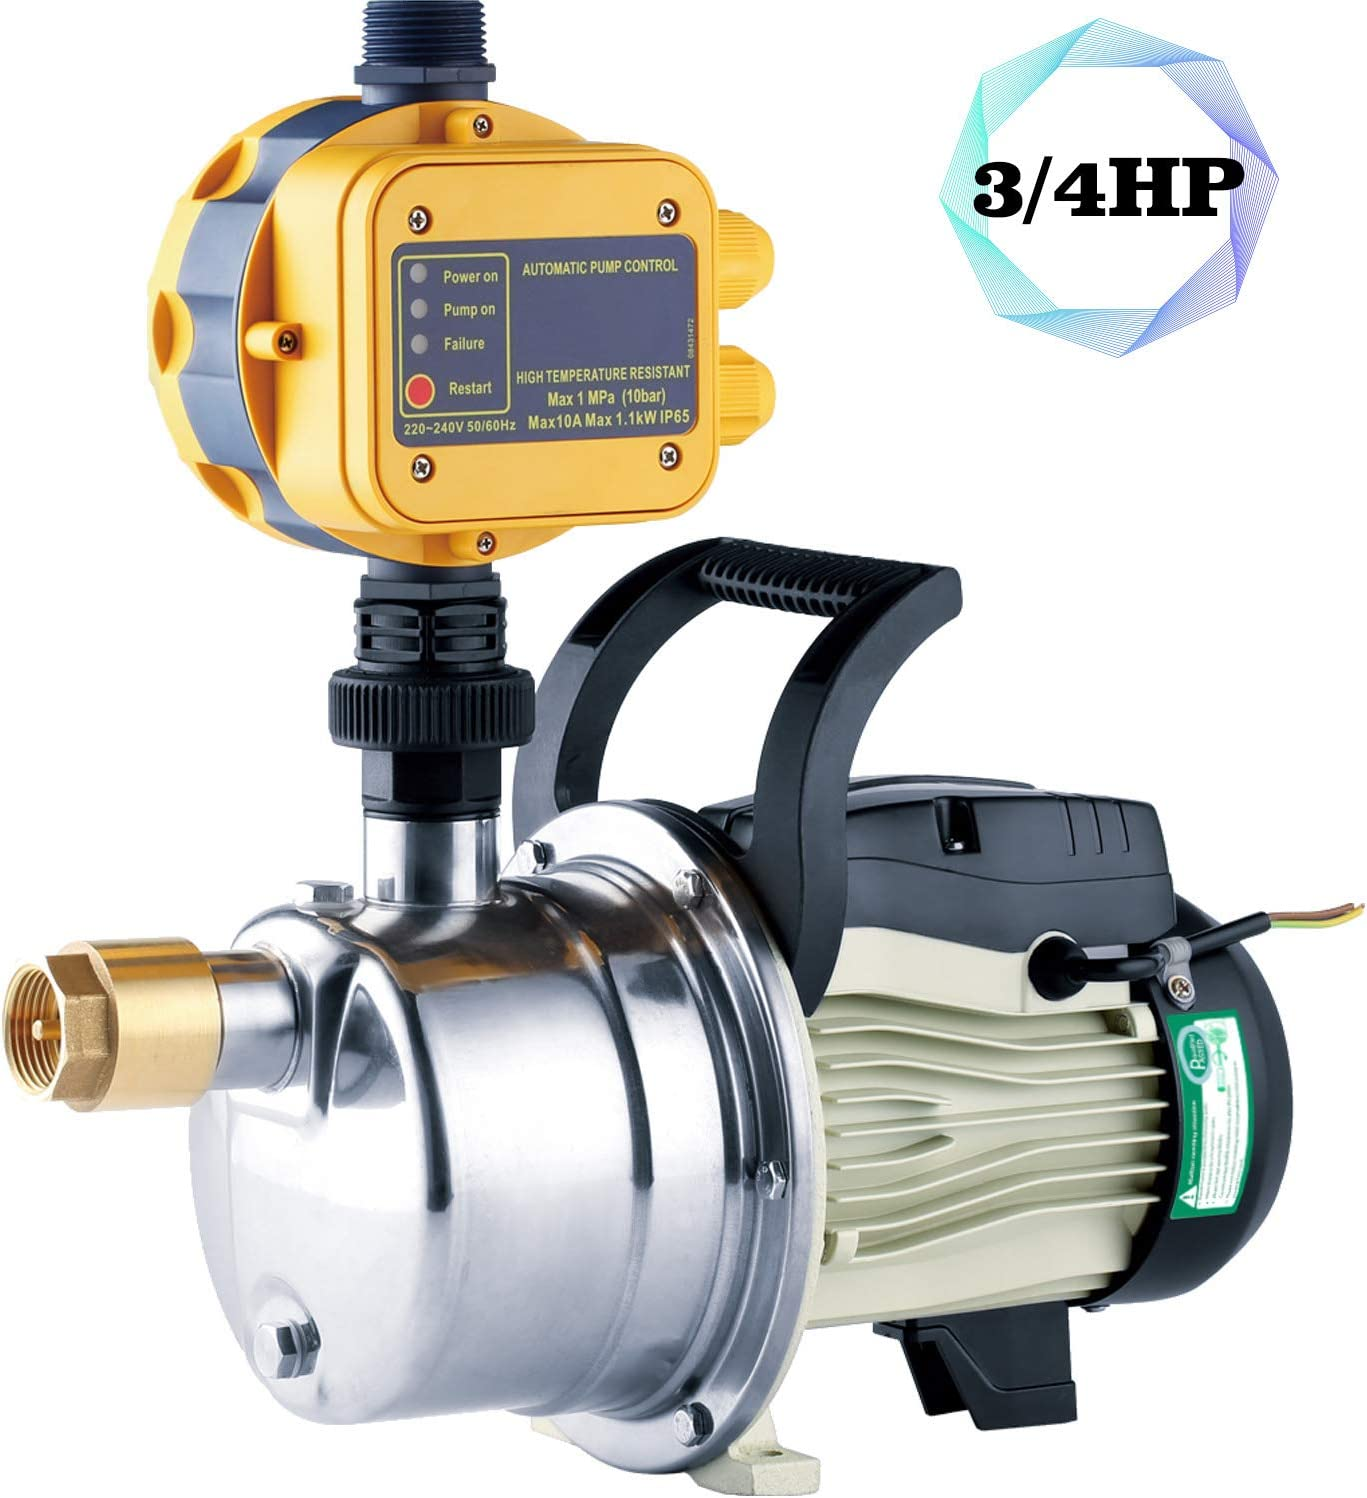 TDRFORCE 3/4 HP Pressure Booster Pump Automatic Water Pump Tankless Shallow Well Self-priming Jet Pump System